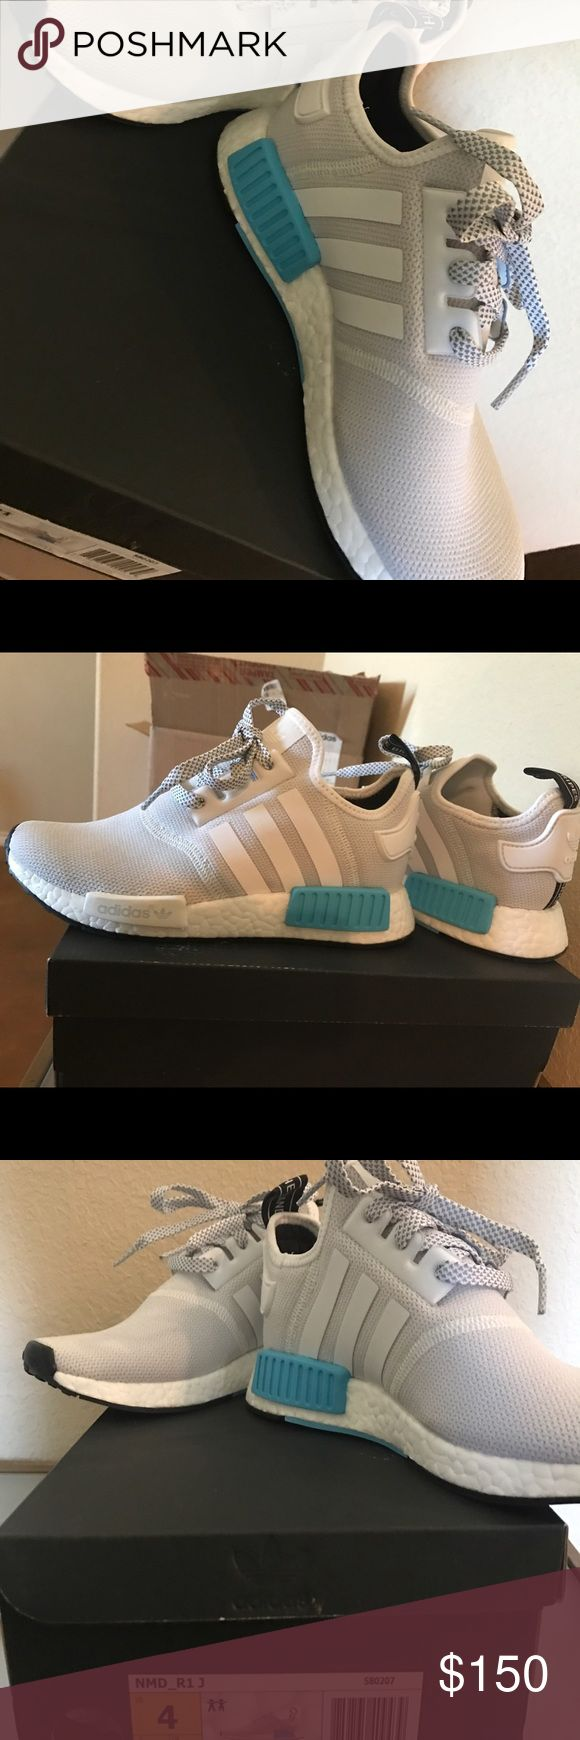 KIDS ADIDAS NMD White adidas nmd with blue bottom! Worn once just were too tight! No marks in perfect condition Adidas Shoes Athletic Shoes